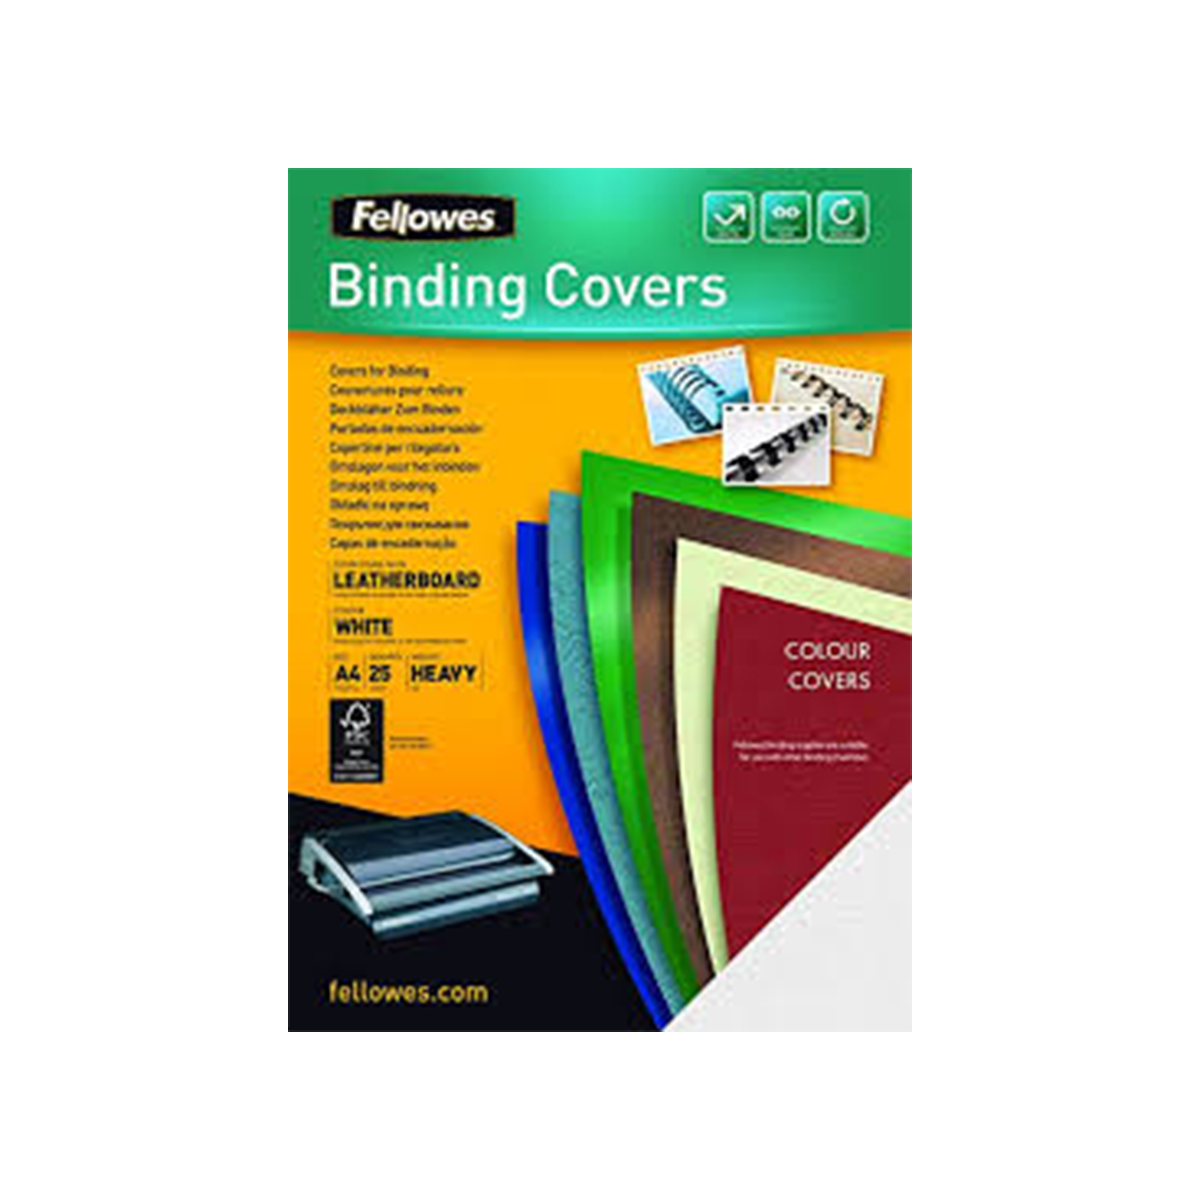 Fellowes 5370104 A4 Leatherboard Covers White 100 PK